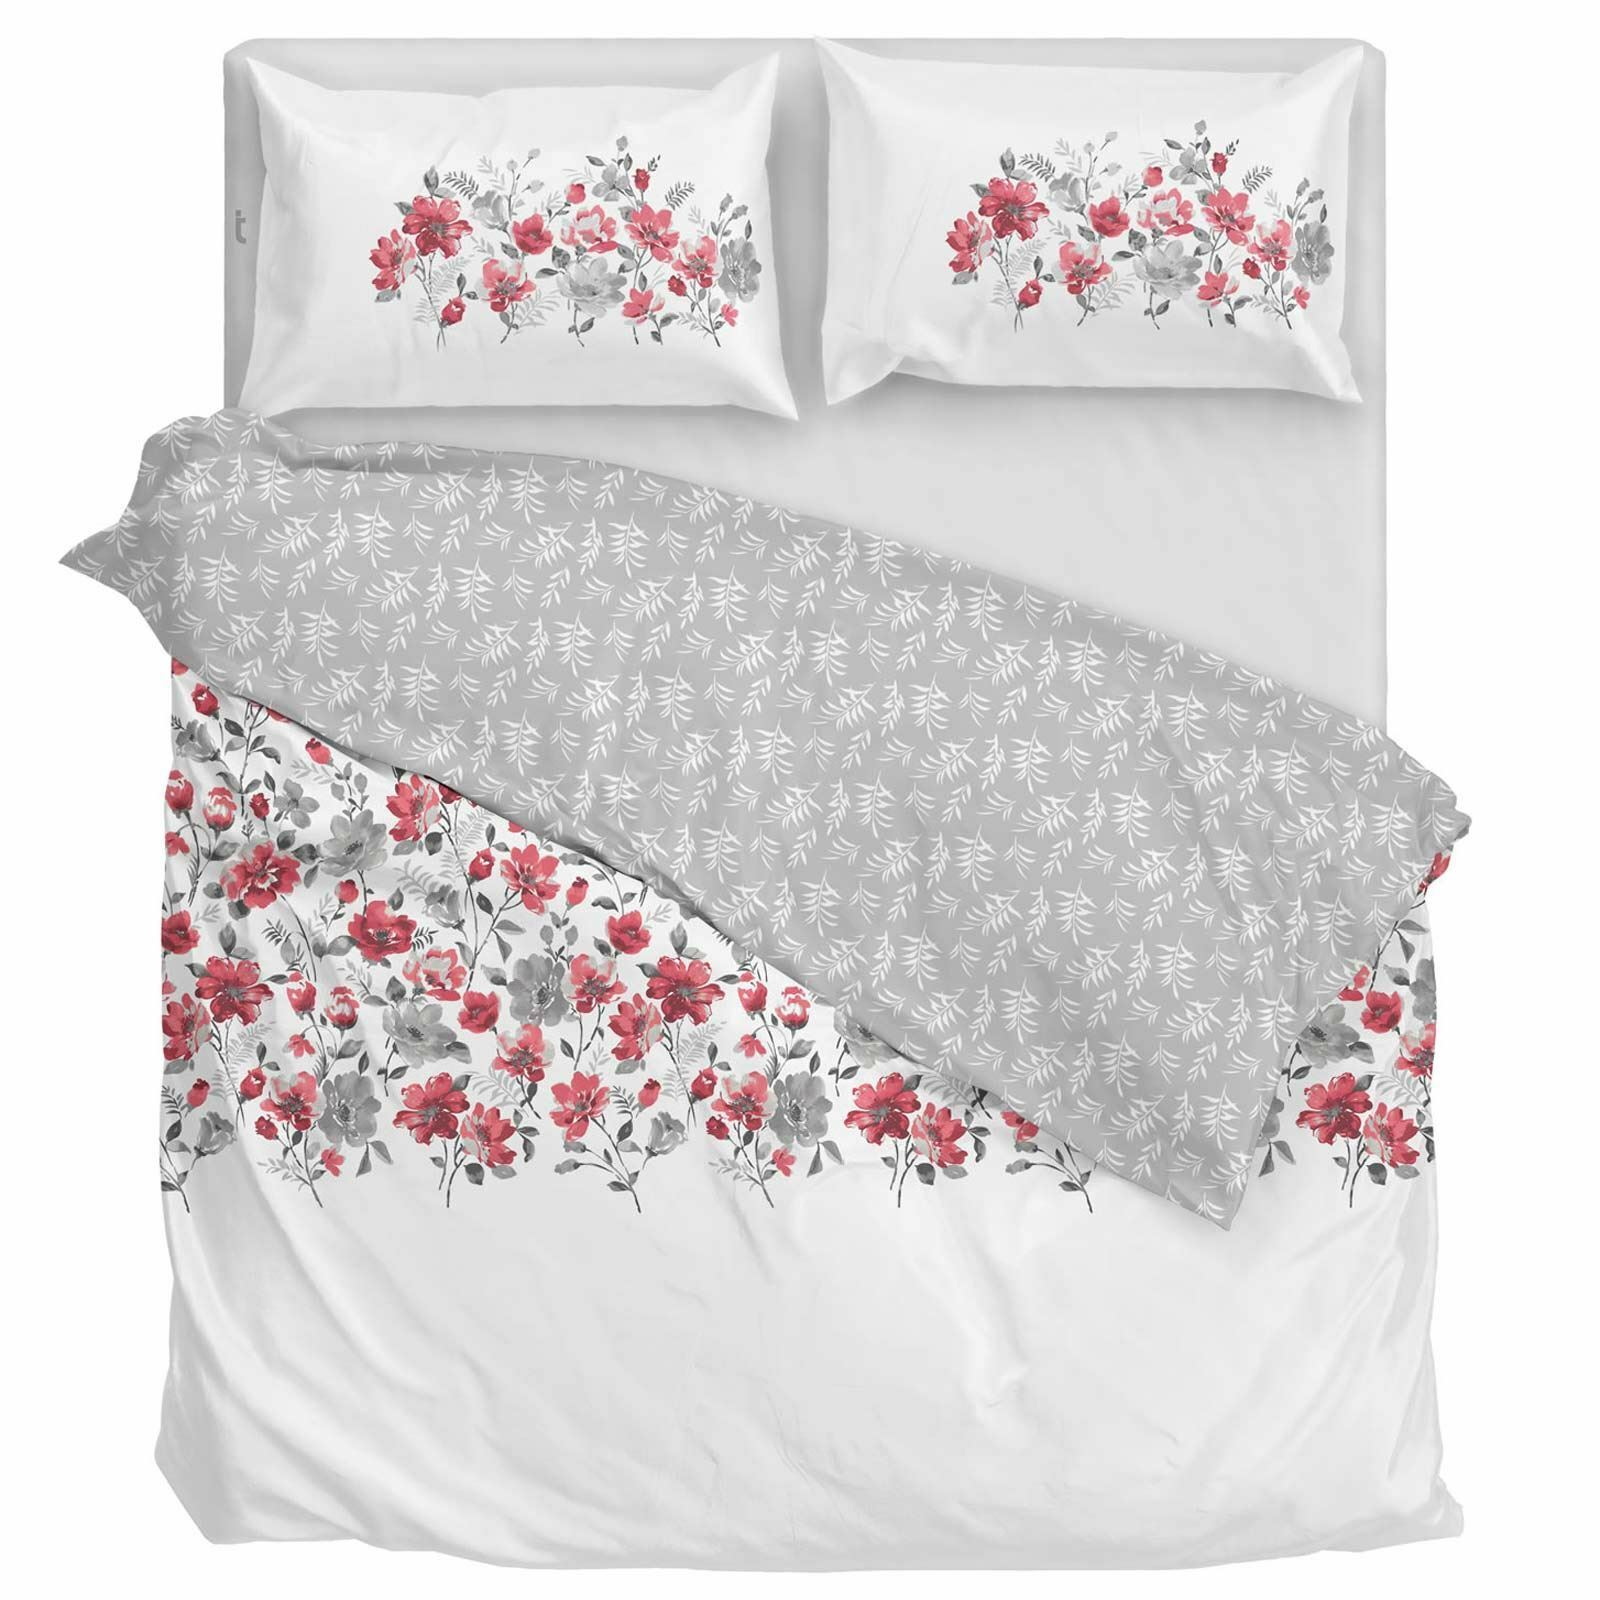 Red Duvet Covers Gabriella Floral Printed Flowers Easy Care Quilt Bedding Sets